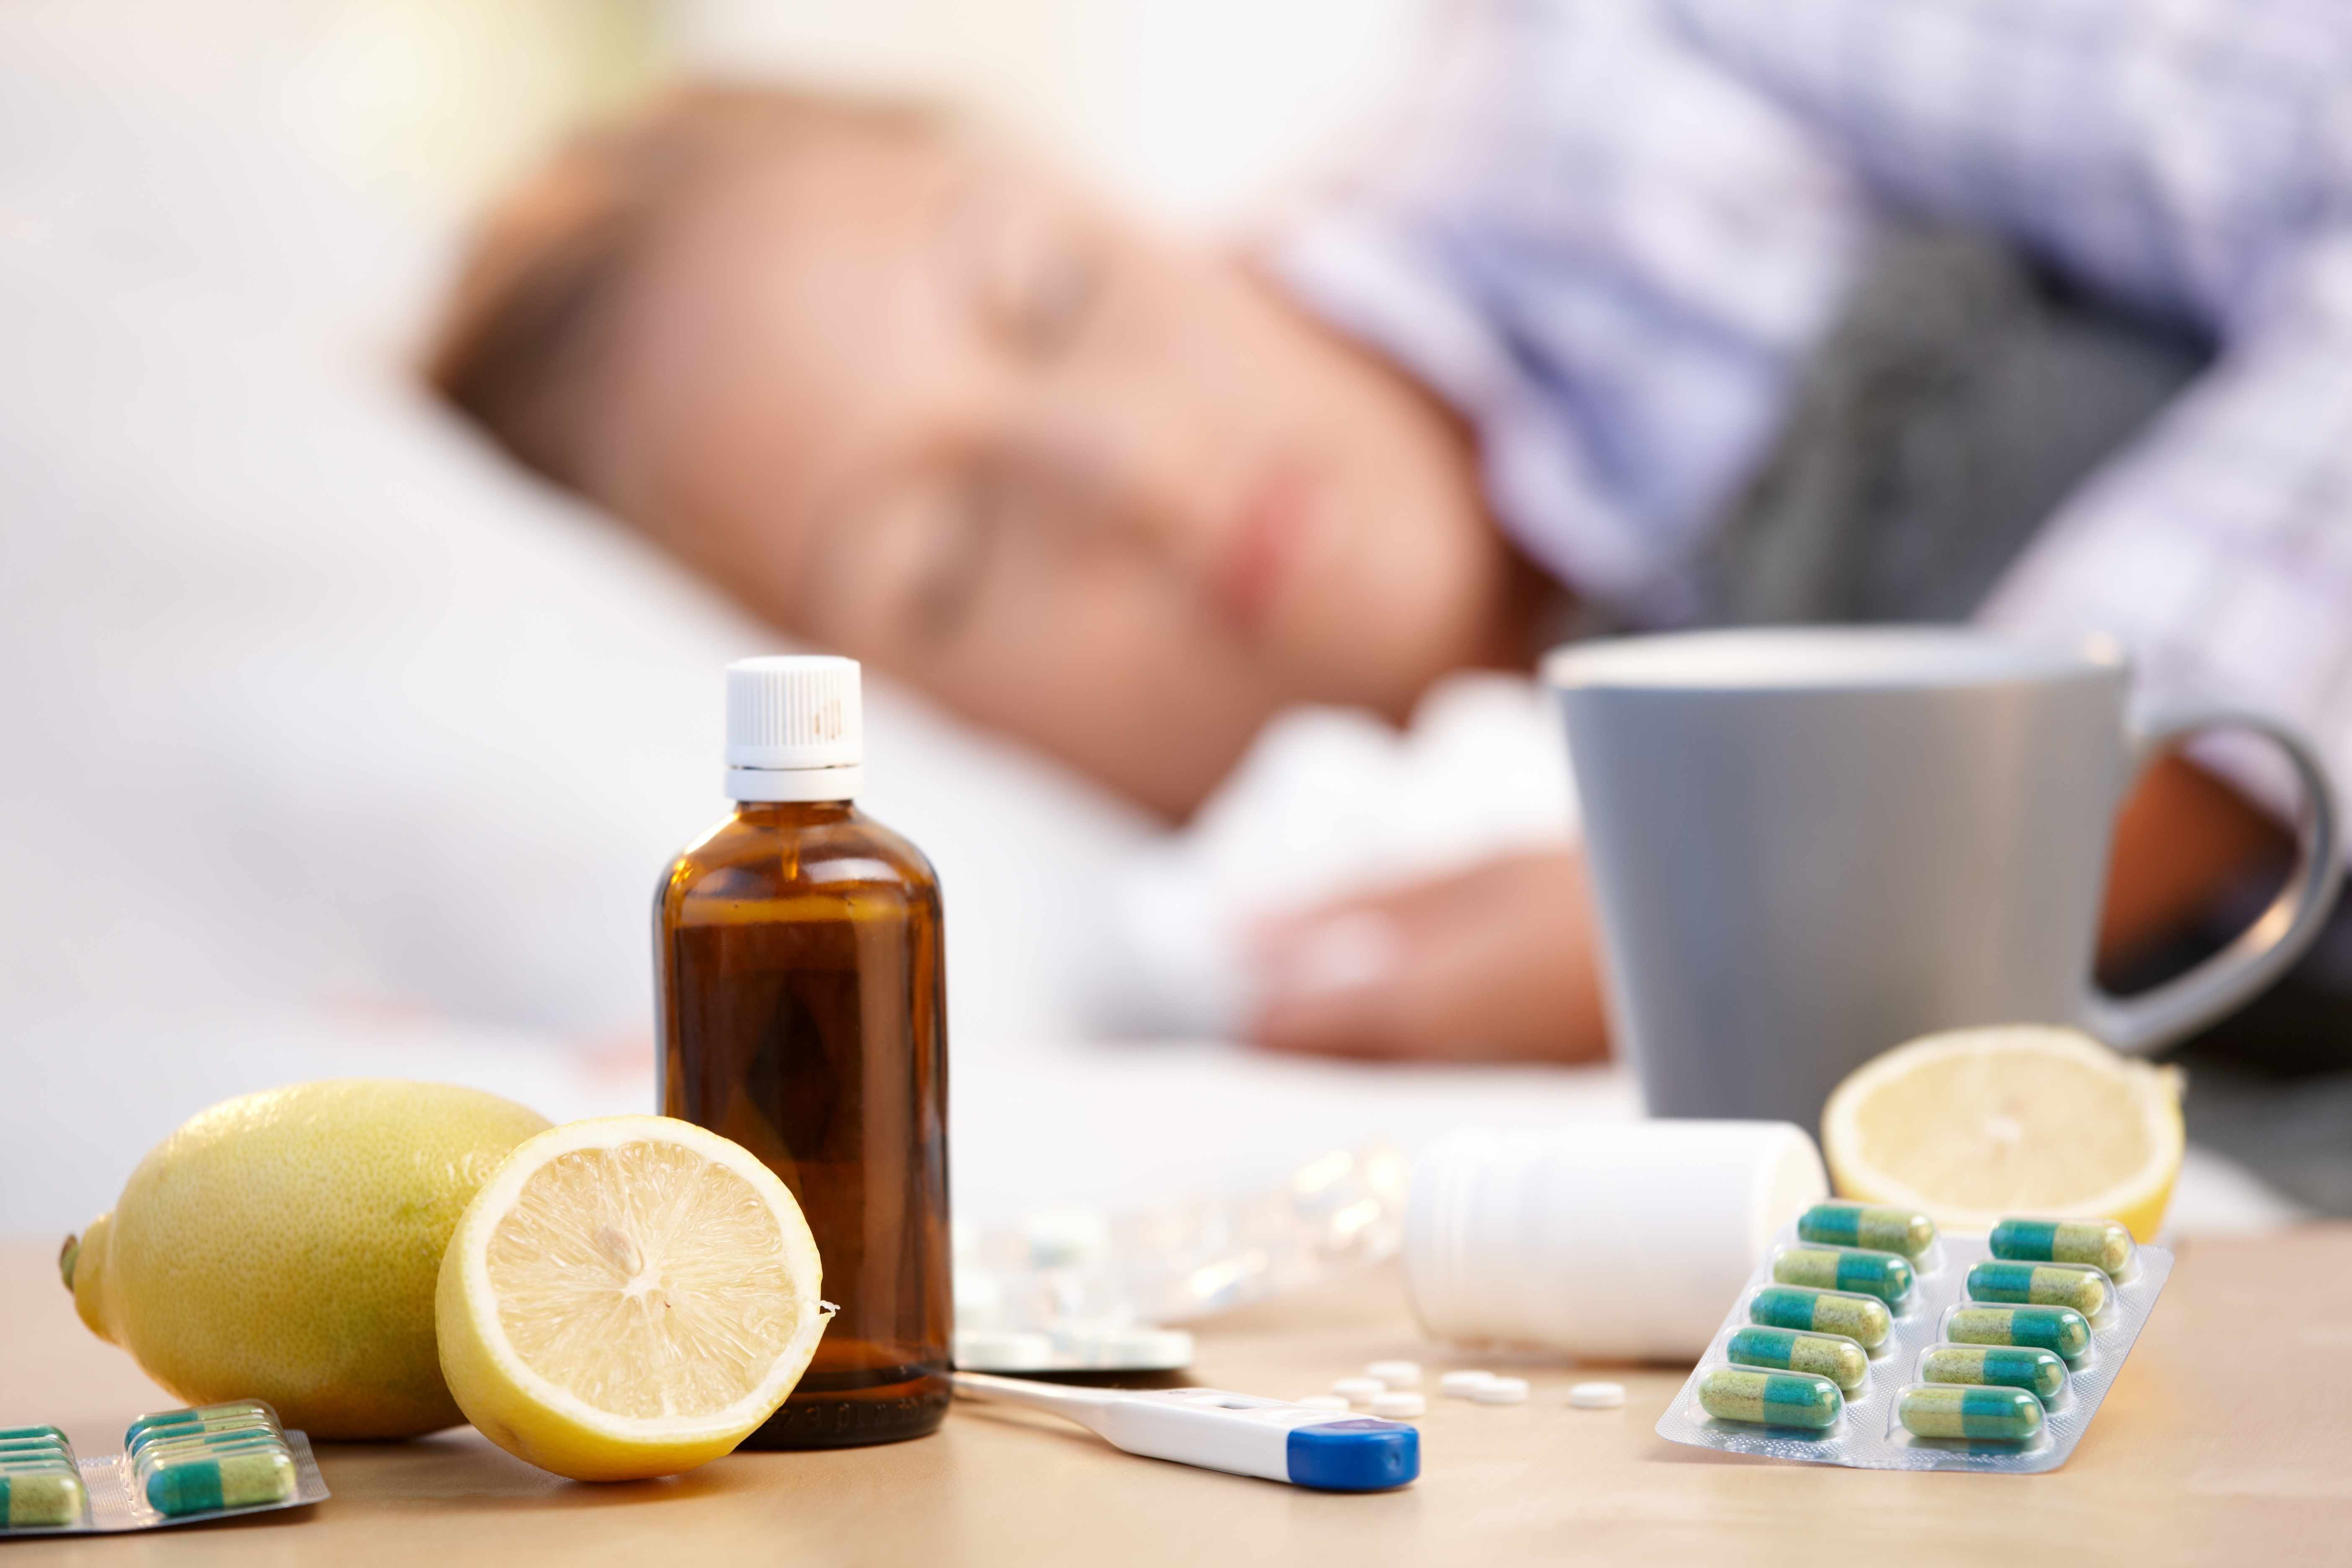 a sick person with a cold or flu, sleeping in bed with medications on the bedside table